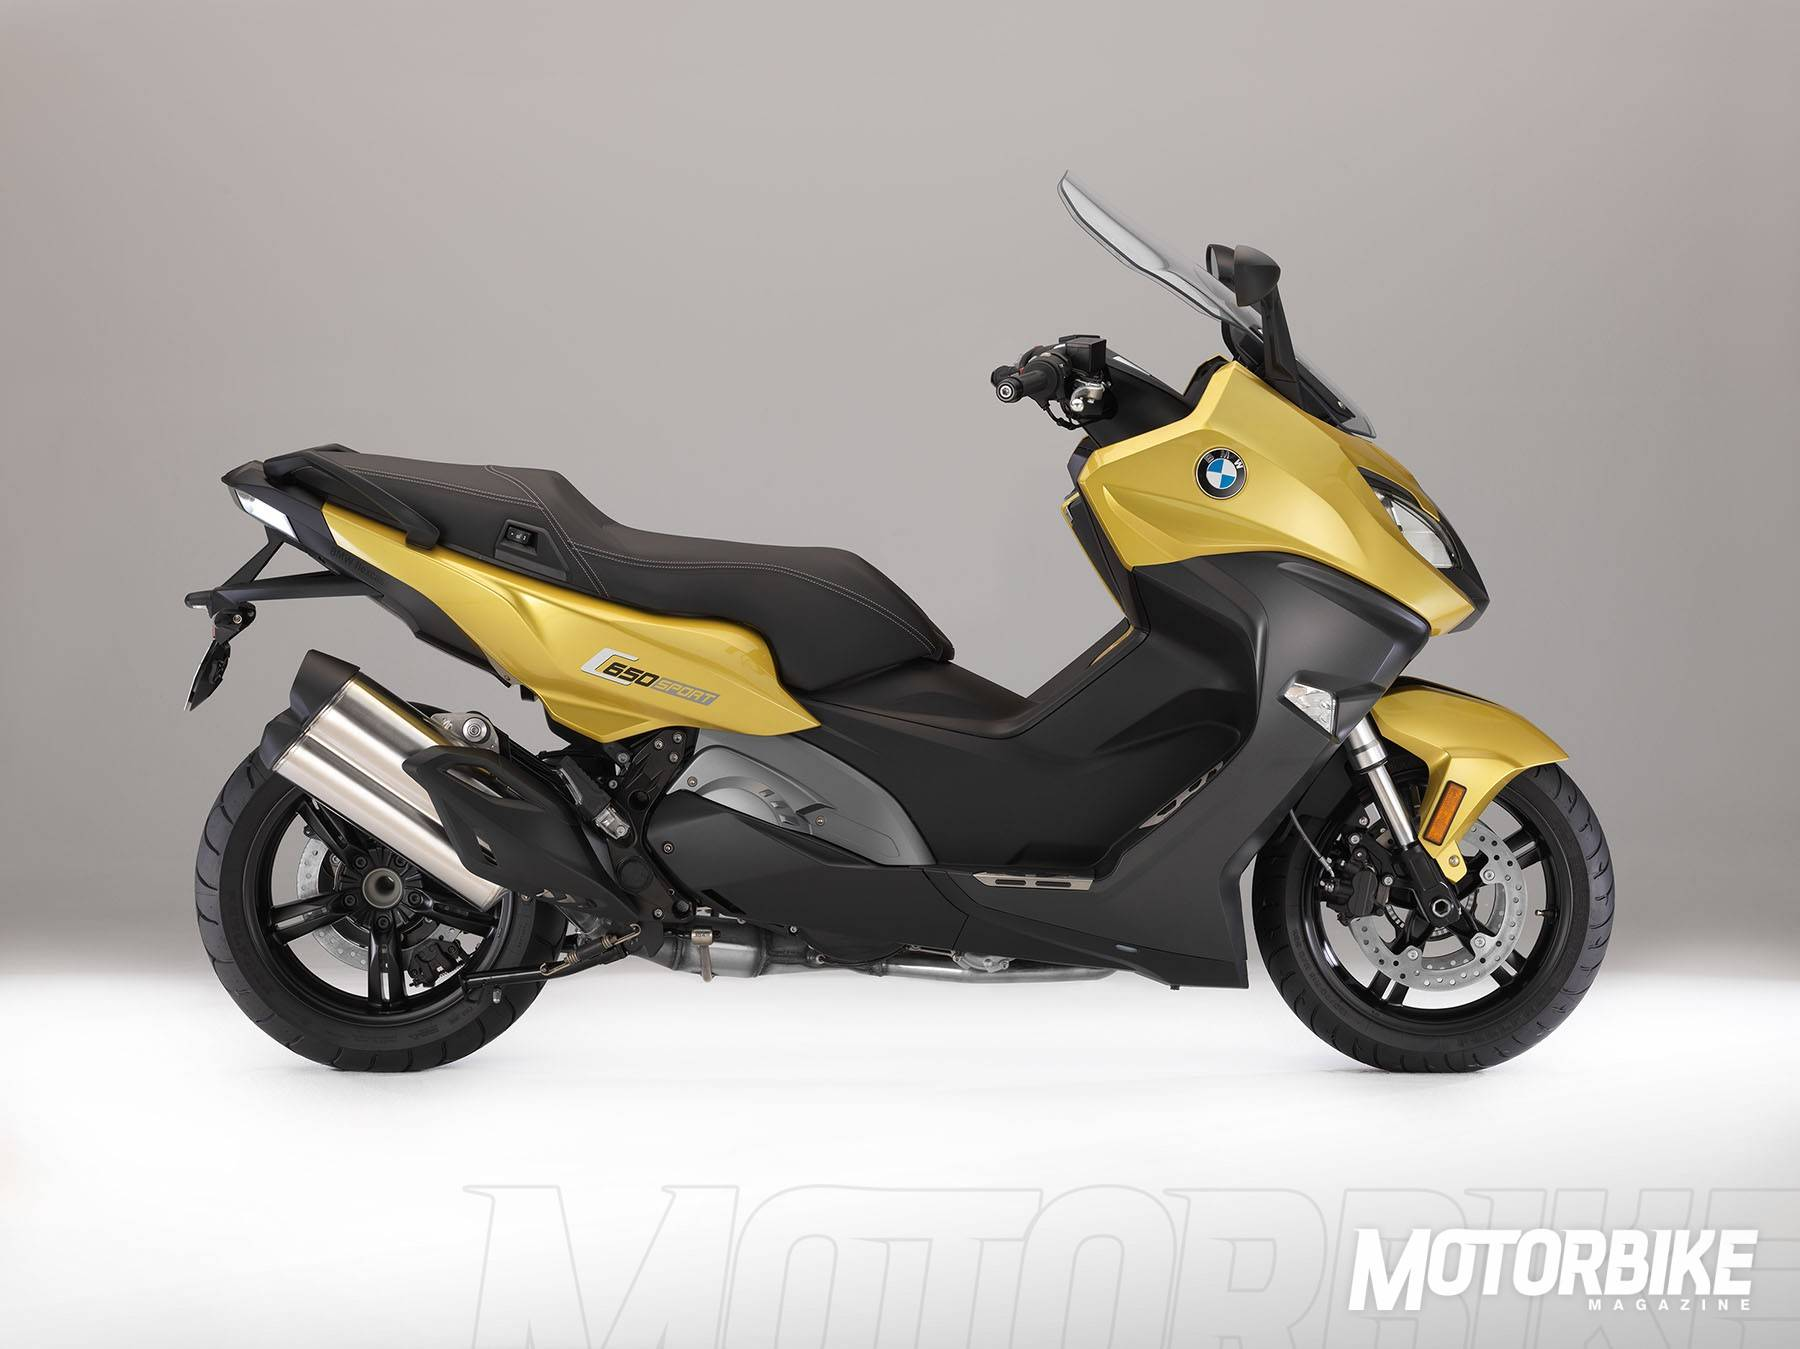 bmw c 650 sport 2018 precio fotos ficha t cnica y motos rivales. Black Bedroom Furniture Sets. Home Design Ideas